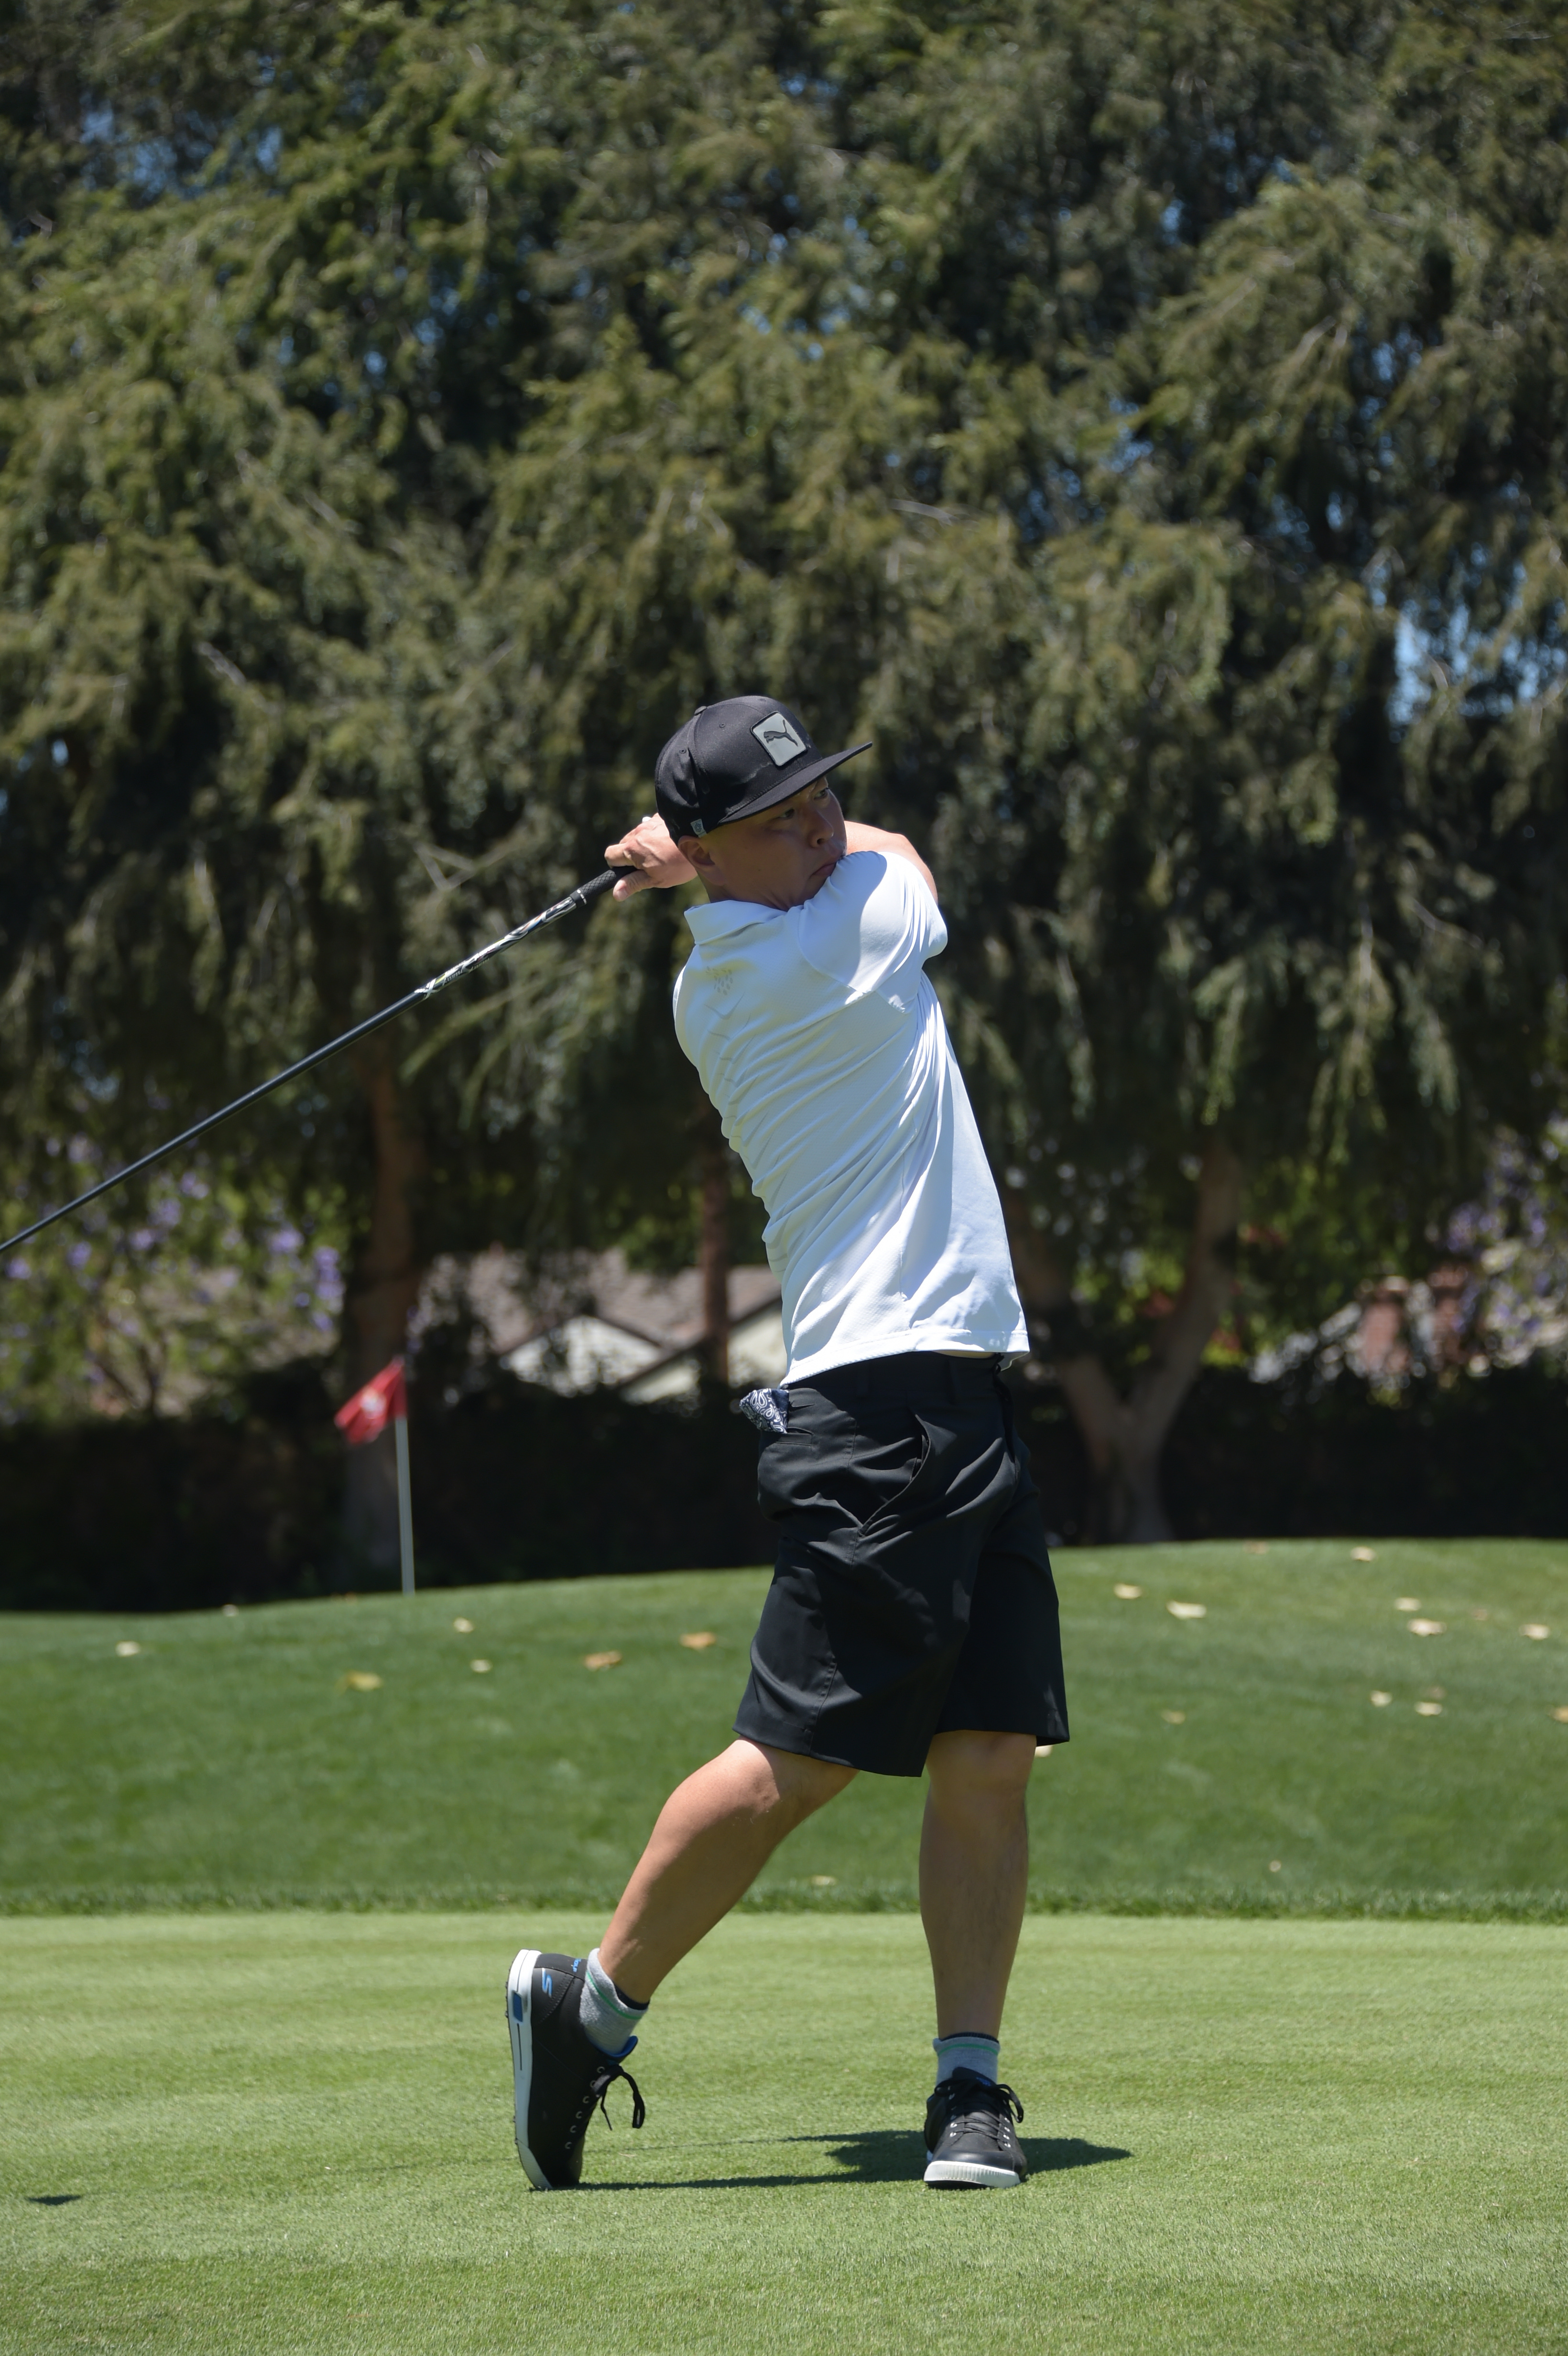 Actor CS Lee plays at the Screen Actors Guild Foundation's 6th Annual Los Angeles Golf Classic on June 8, 2015 in Burbank, California. (Photo by Jason Kempin/Getty Images for The Screen Actors Guild Foundation)